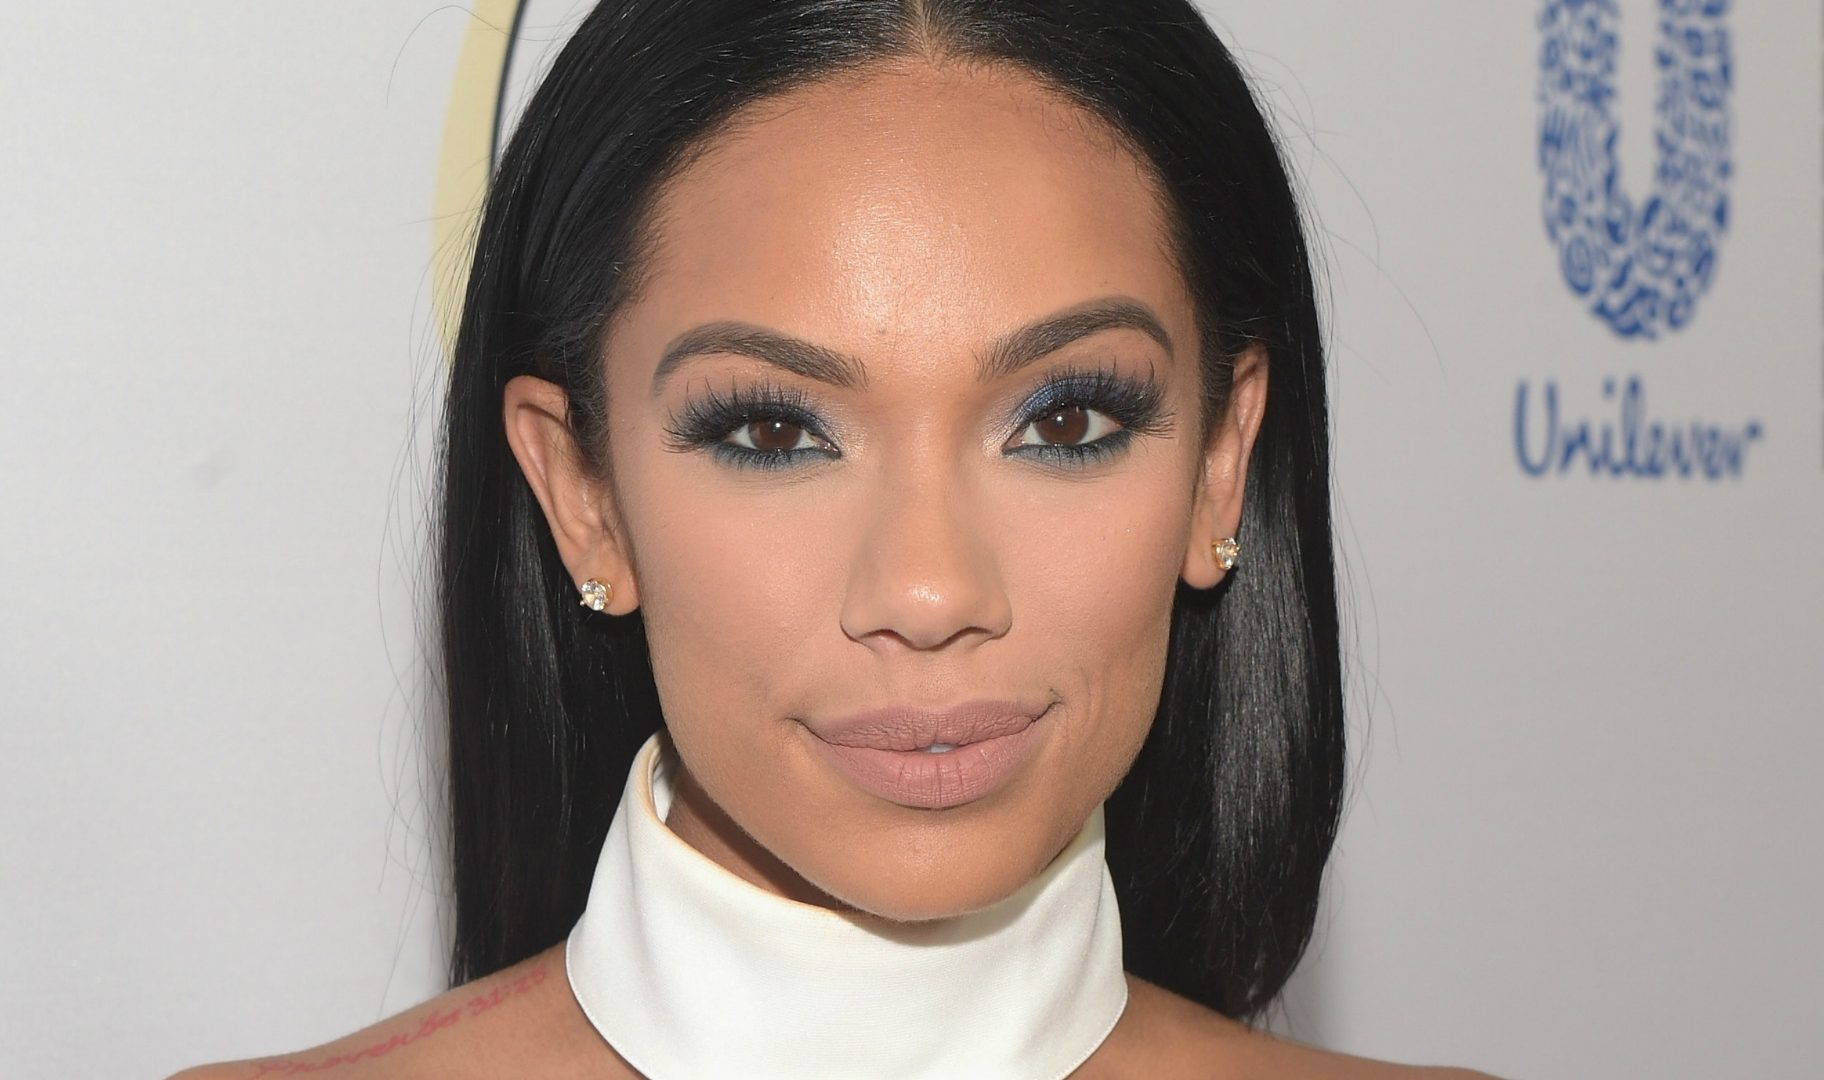 Erica Mena Is Shining In A Golden Dress For Christmas - Check Out The Amazing Home Decor